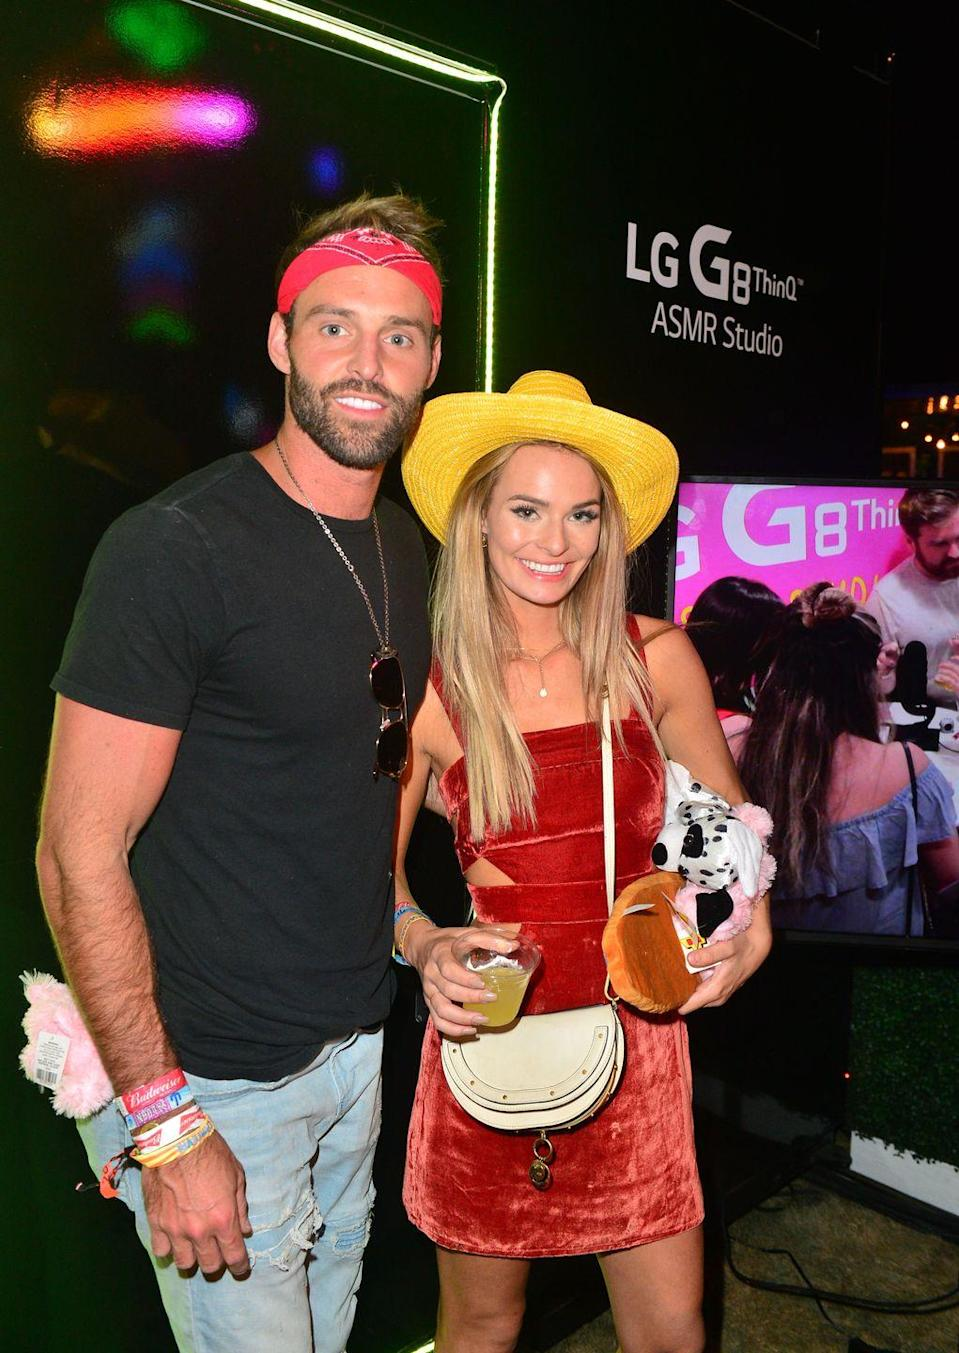 """<p>Robby has had a string of relationships with reality stars since breaking things off with Amanda. The social media influencer was briefly connected to <em>Vanderpump Rules </em>star Scheana Shay and most recently linked to <a href=""""https://people.com/tv/robby-hayes-juliette-porter-kissing-photo-dating/"""" rel=""""nofollow noopener"""" target=""""_blank"""" data-ylk=""""slk:Siesta Keys star"""" class=""""link rapid-noclick-resp""""><em>Siesta Keys </em>star</a> Juliette Porter (pictured here). For now, though, he seems to be single as a Pringle.</p>"""